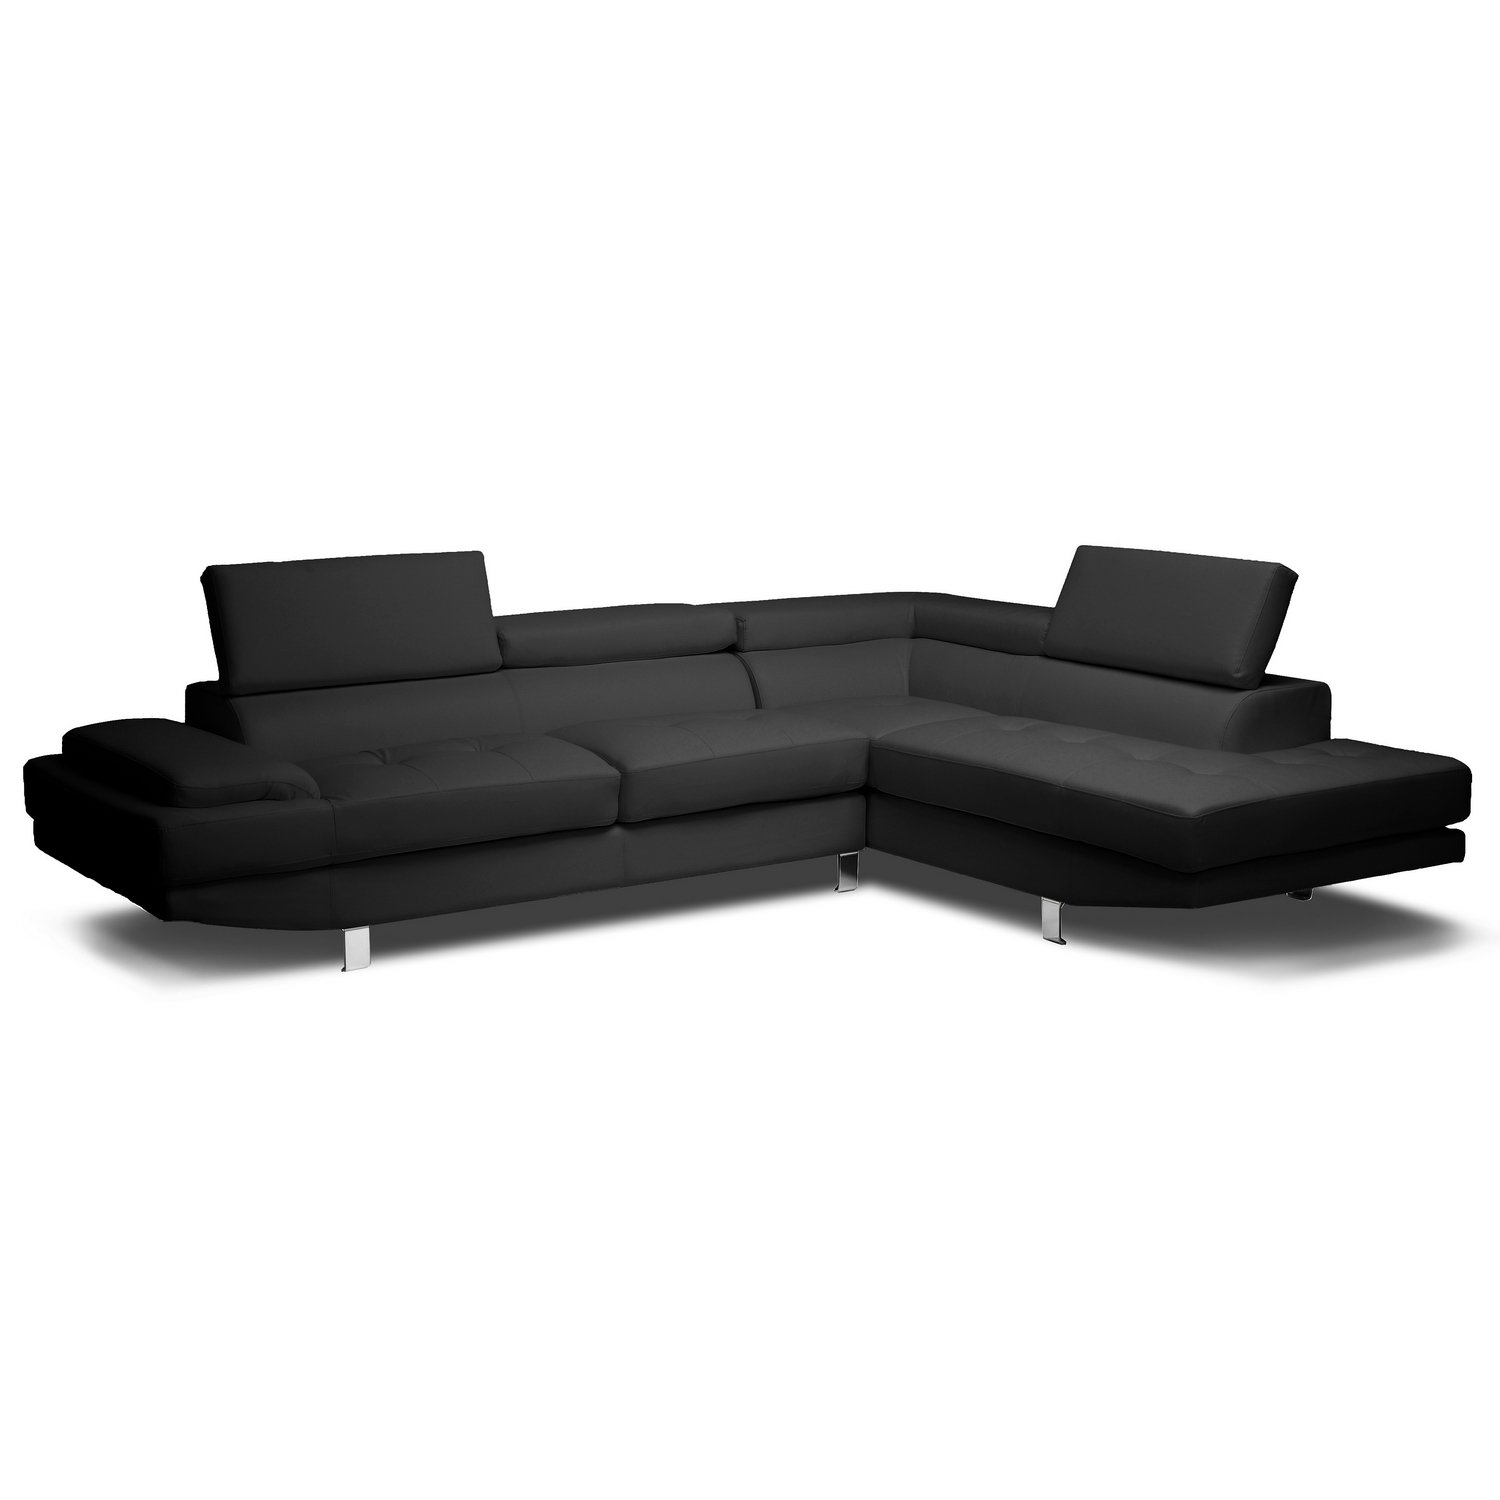 amazoncom baxton studio selma leather modern sectional sofa blackkitchen  dining. amazoncom baxton studio selma leather modern sectional sofa